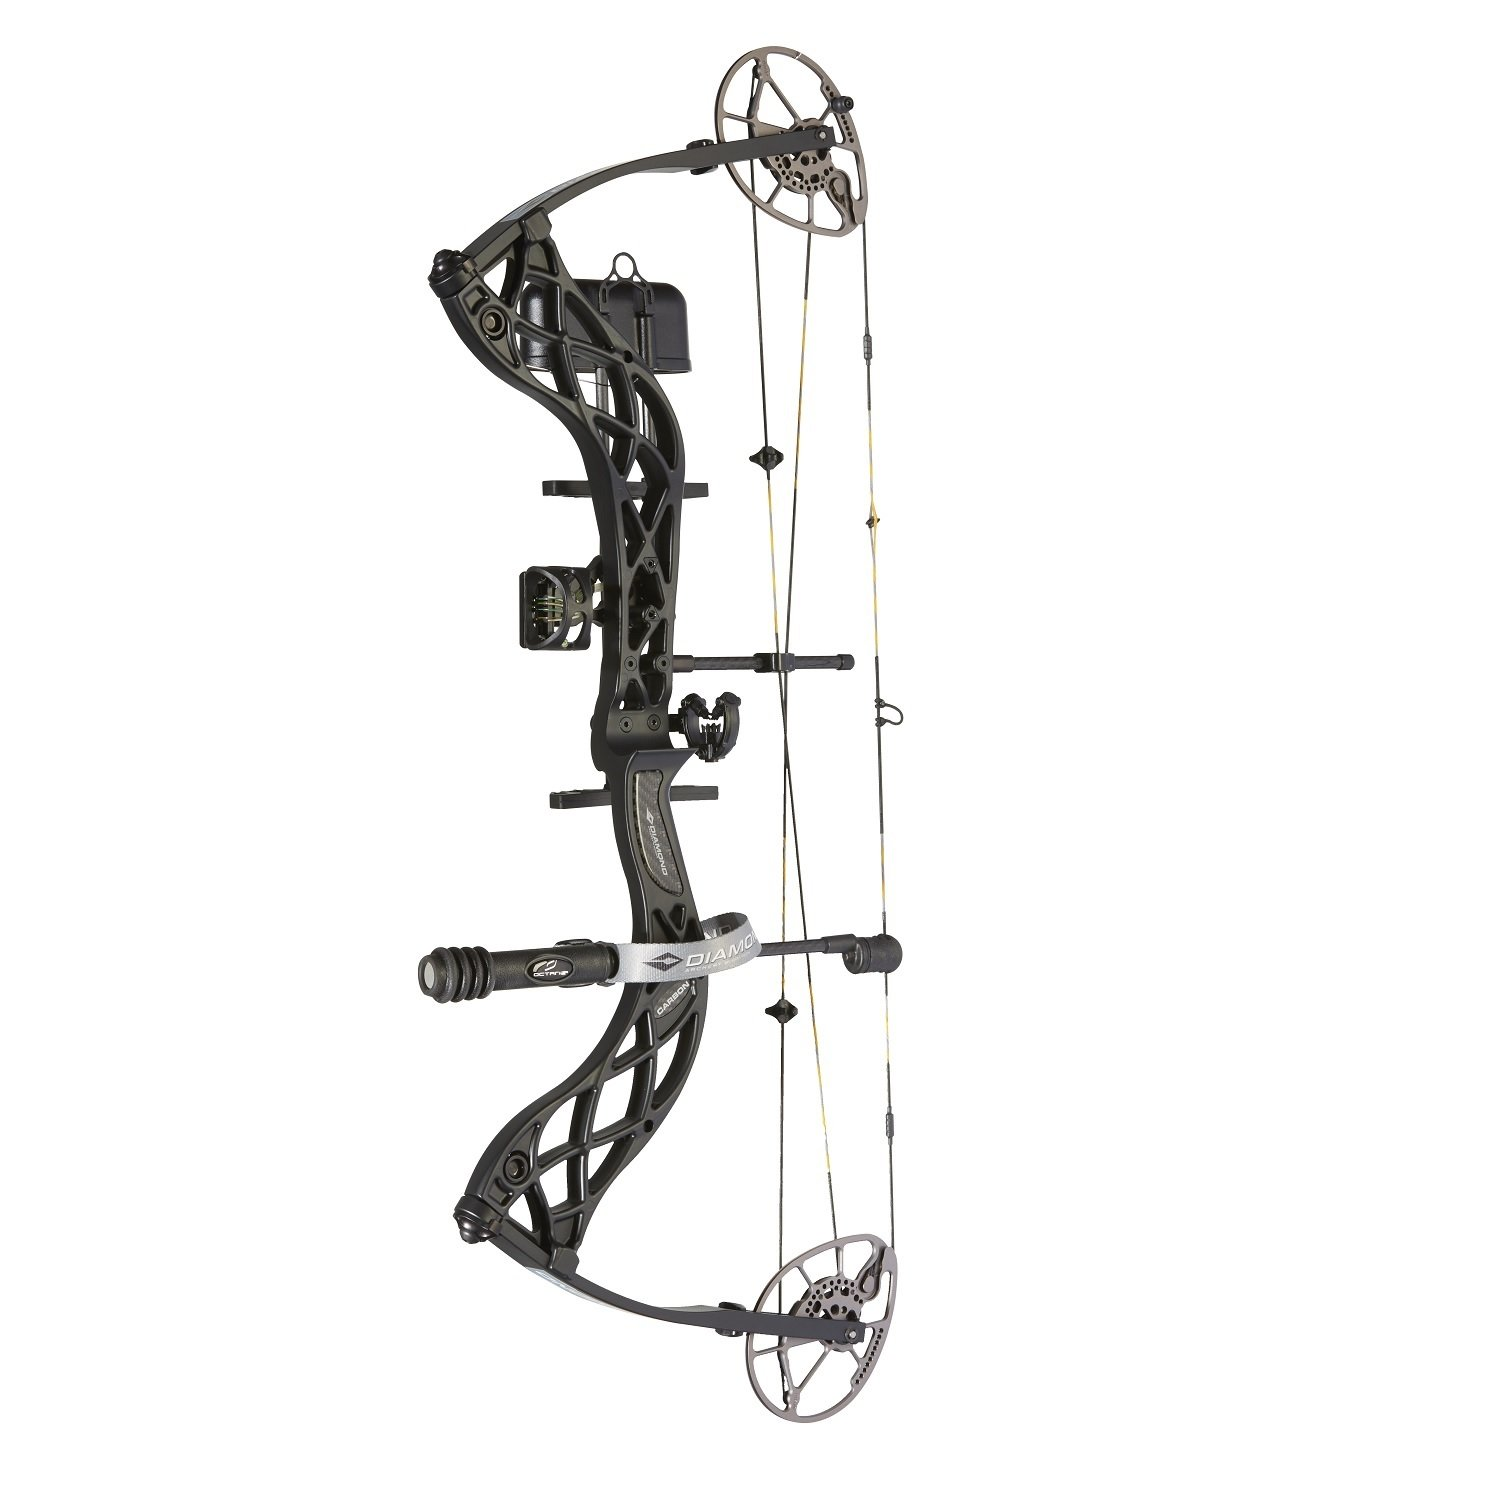 2. Bowtech Archery Diamond Deploy Right Hand Compound Bow